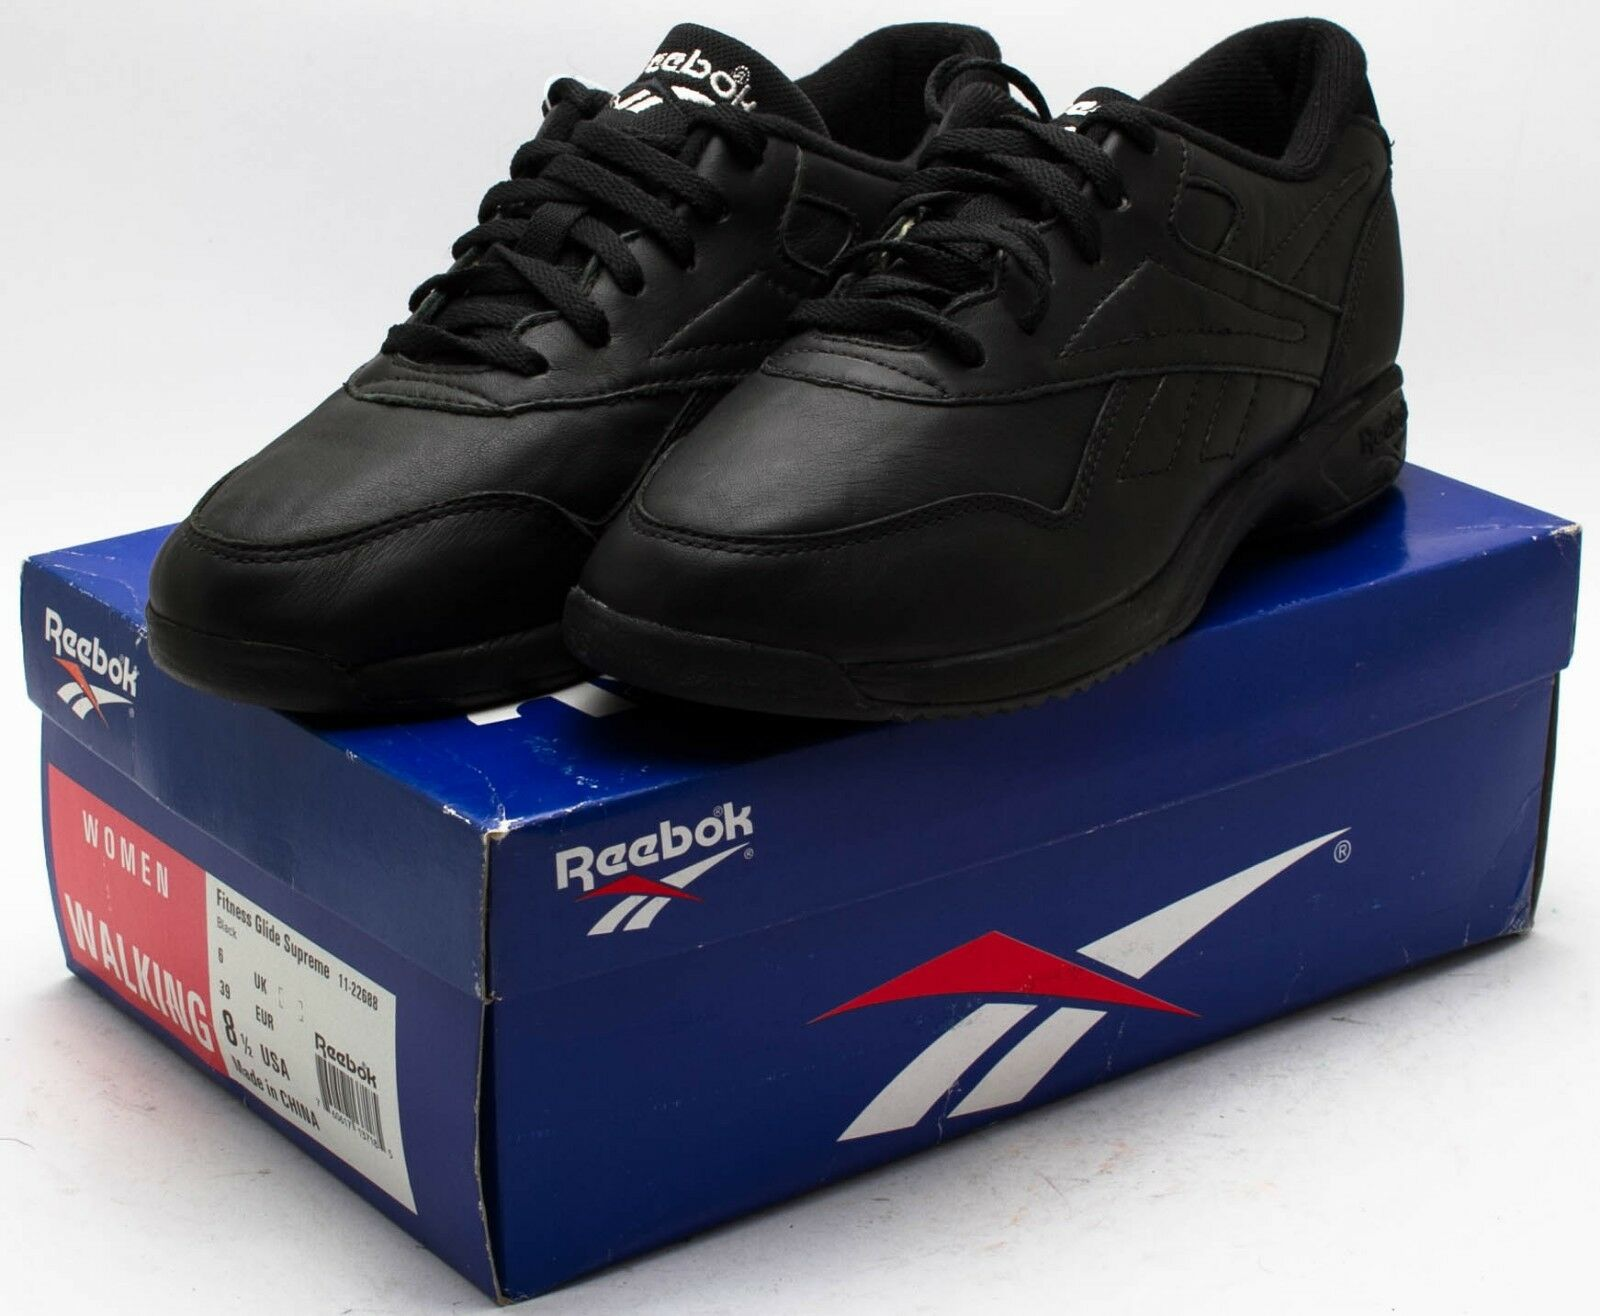 Reebok Women's Vintage 1992 Fitness Glide Supreme shoes 11-22688 Black sz. 8.5